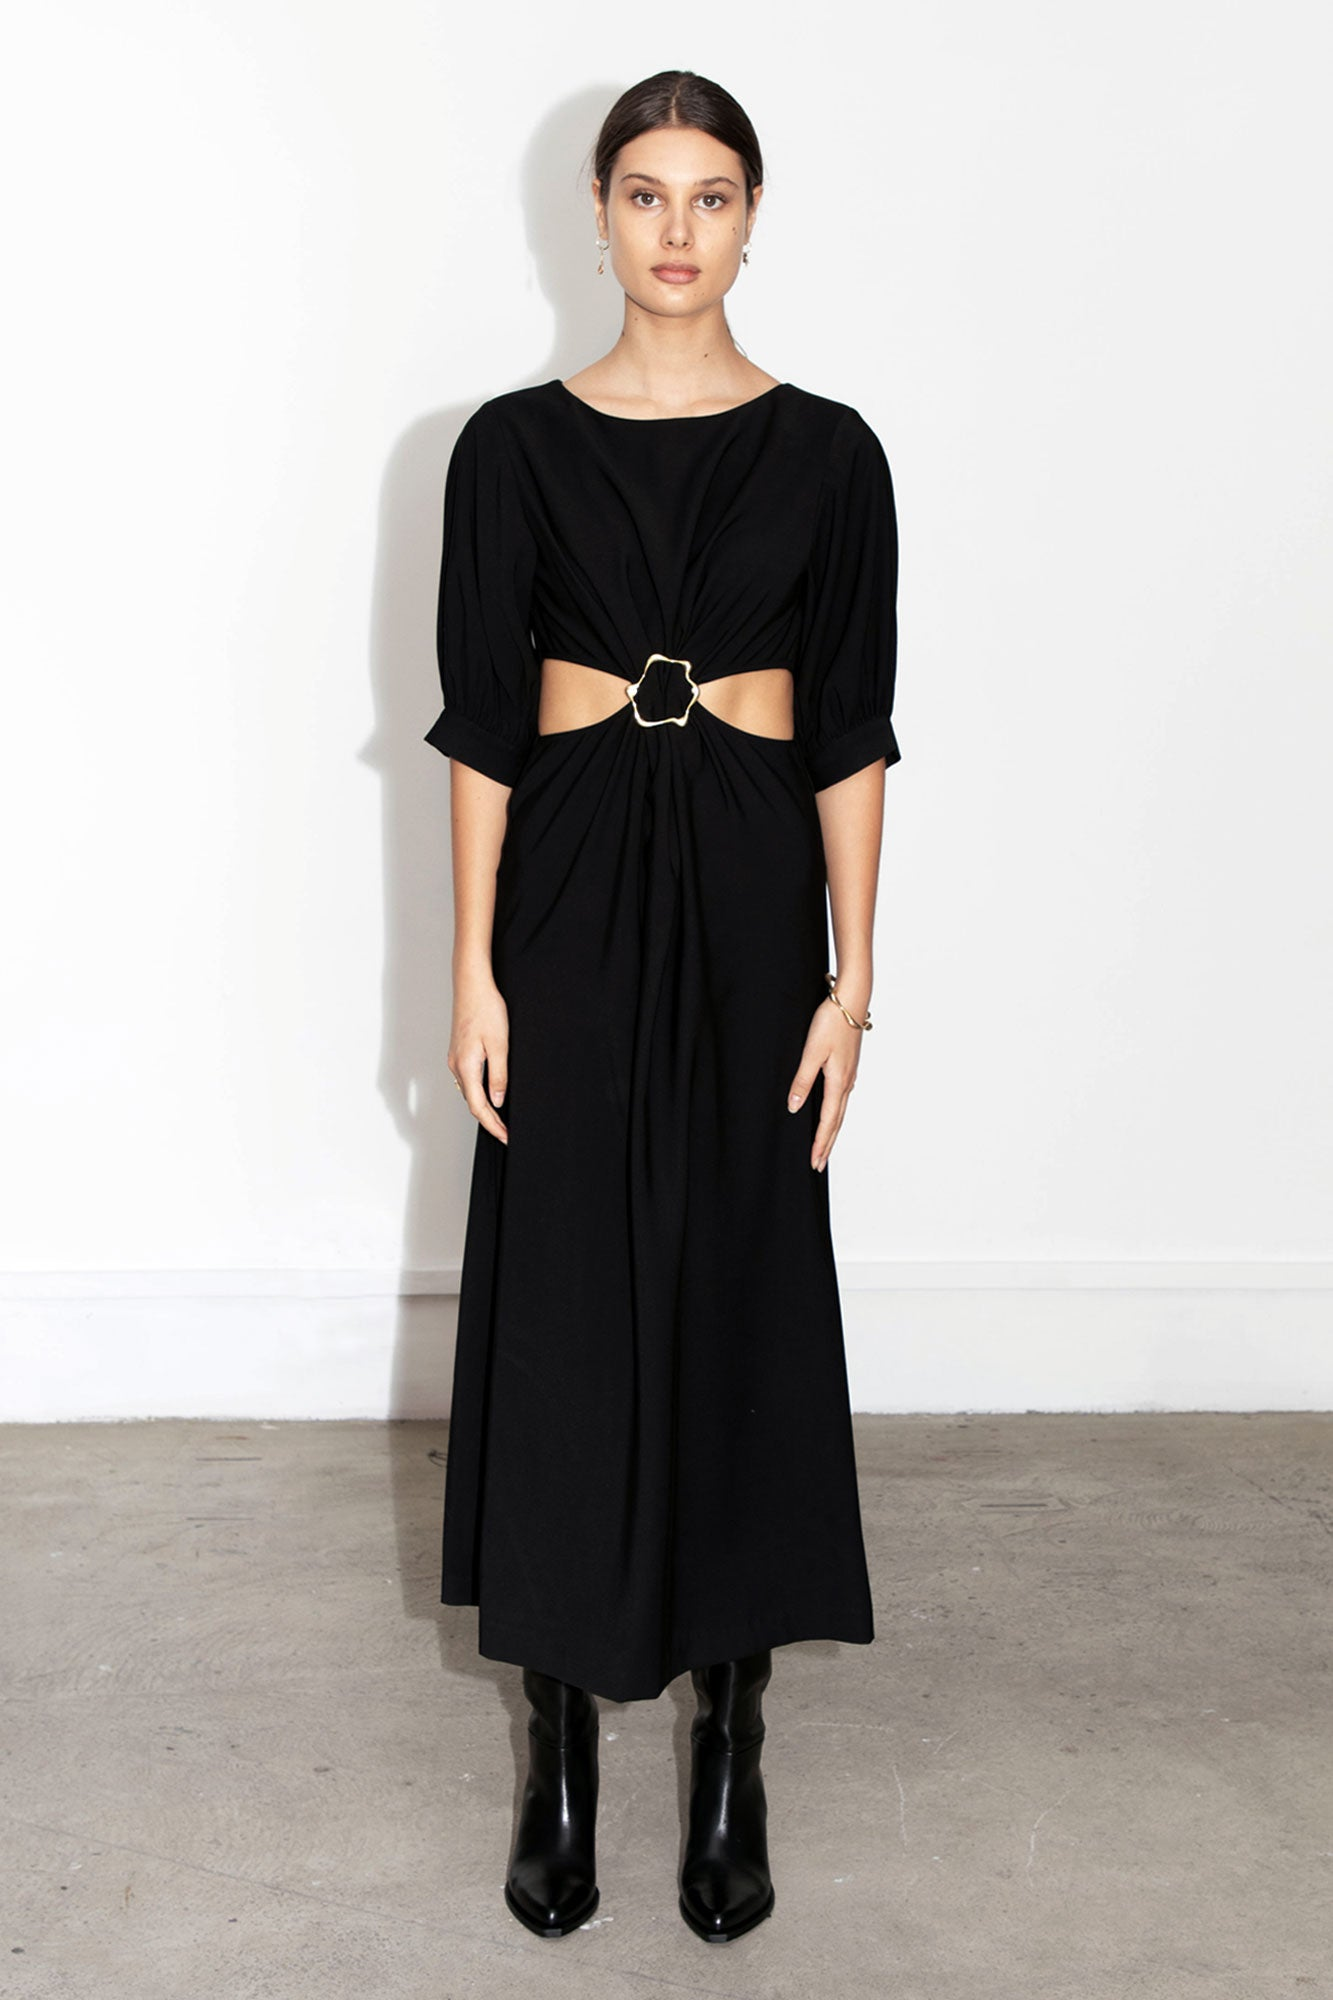 Joie Buckle Dress - Black